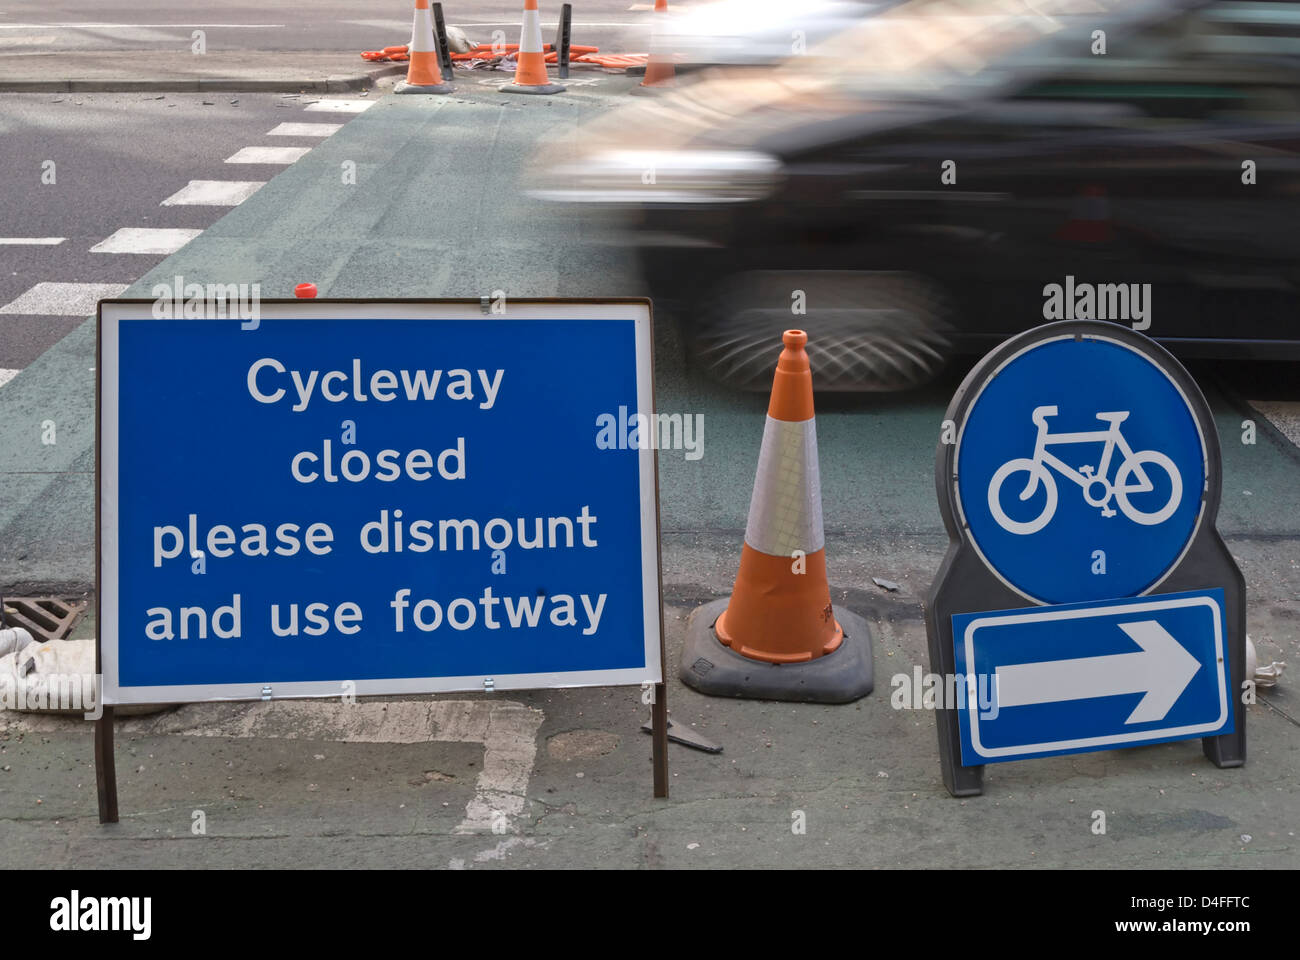 cycleway closed please dismount and use footway sign, with passing blurred motion car, kingston upon thames, surrey, - Stock Image